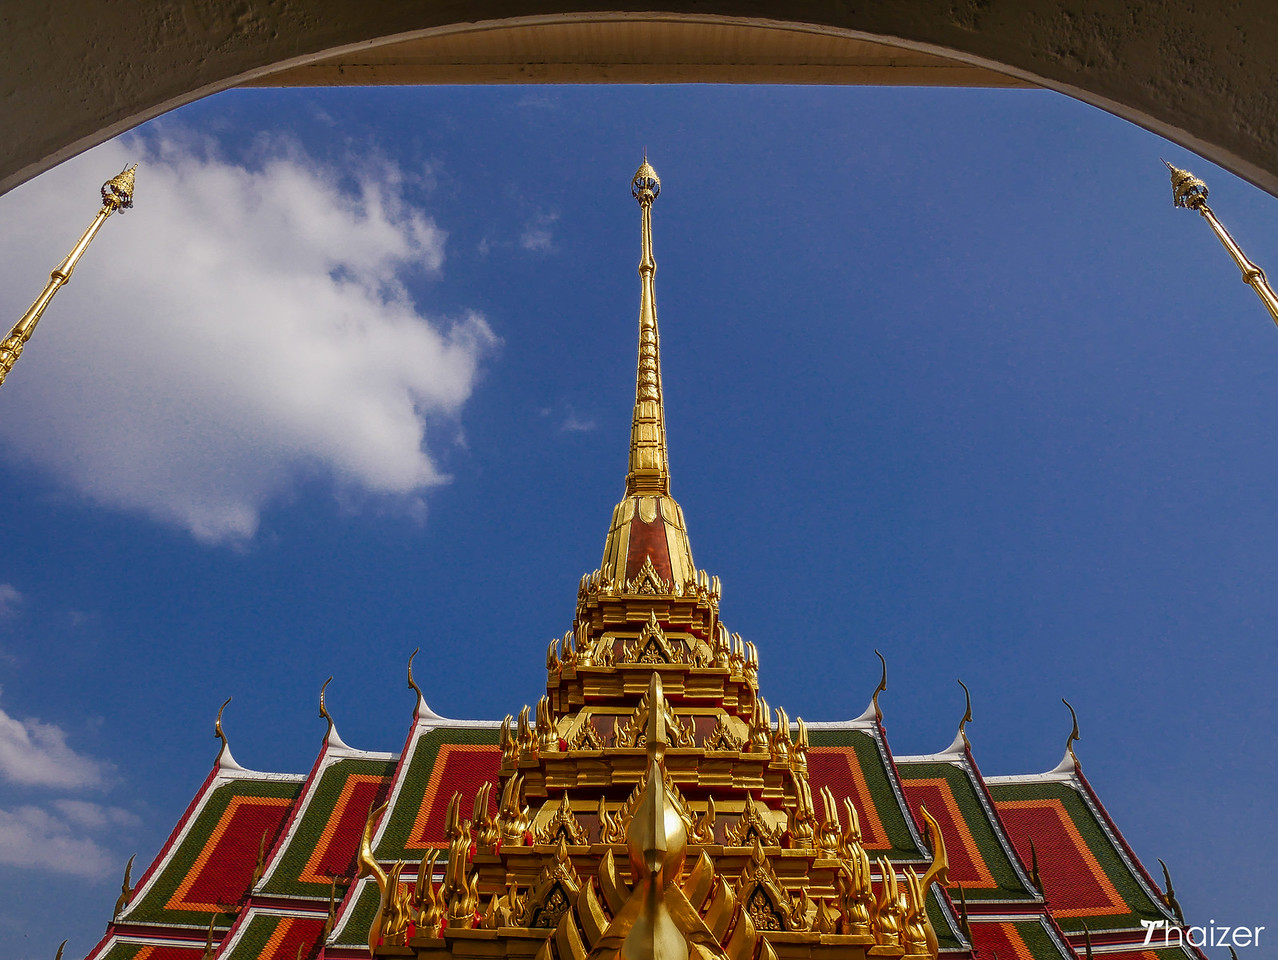 golden spires at Loha Prasat